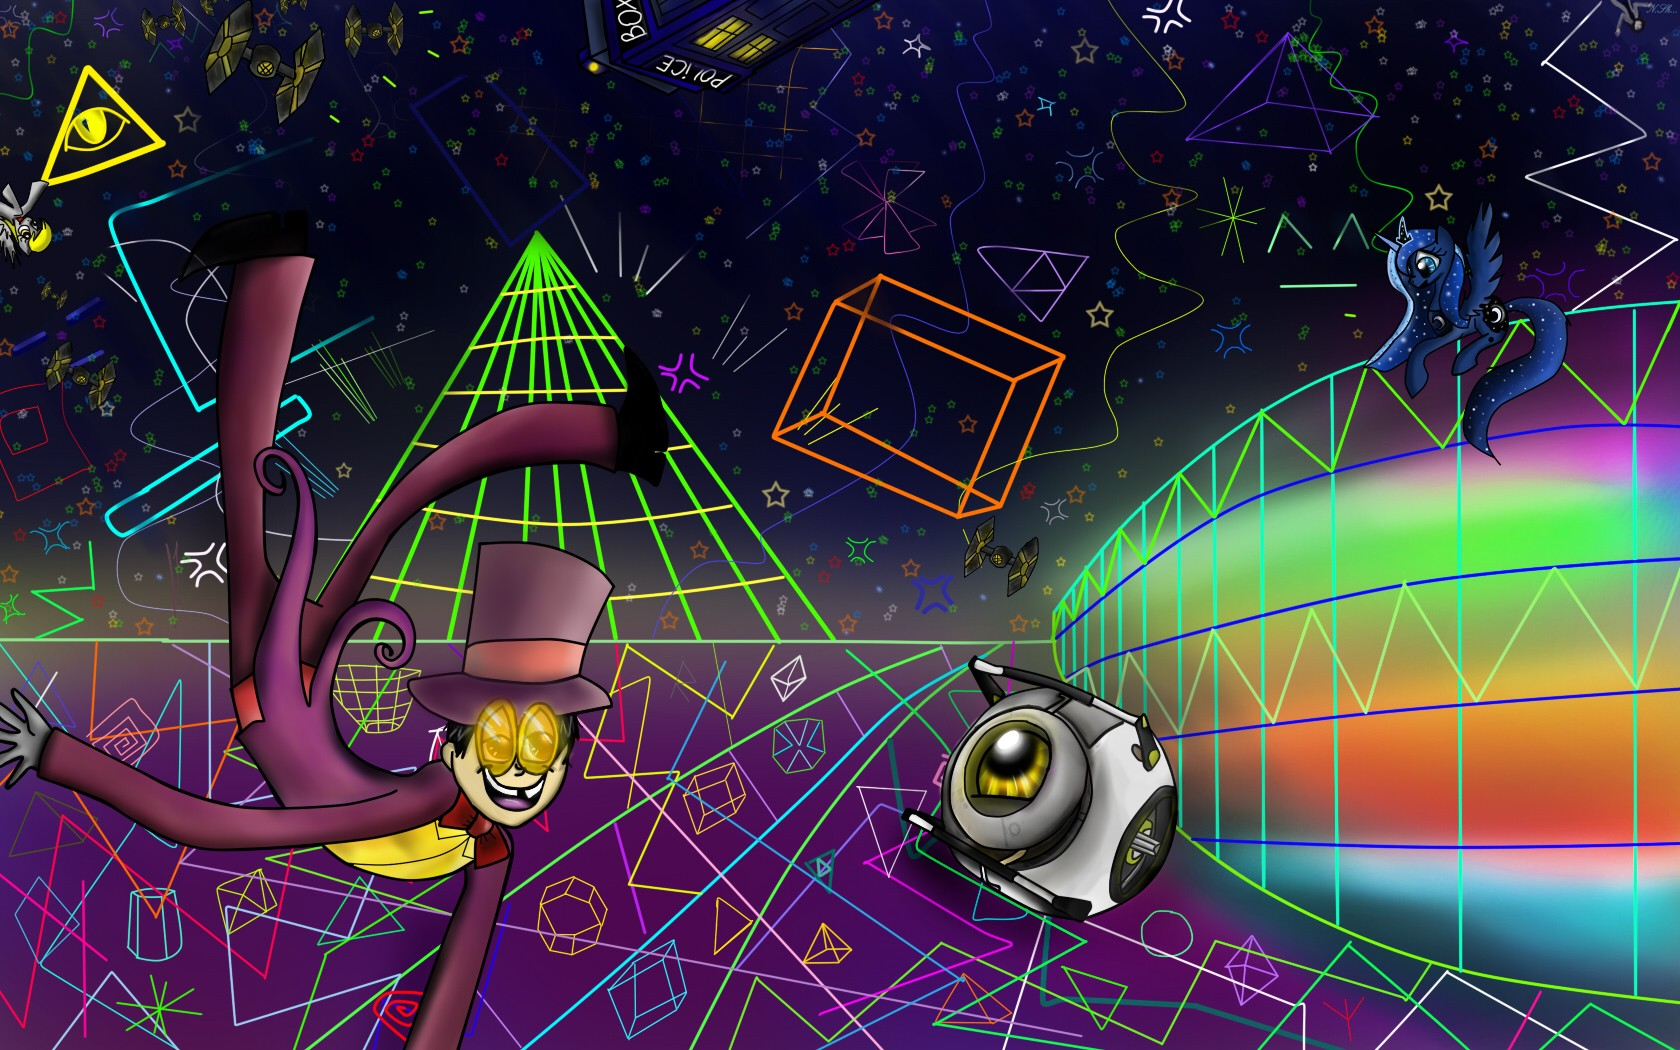 Star Wars Portal Outer Space Tardis Shapes Rainbows Superjail My Little Pony Tie Fighters Wheatley Doctor Who Derpy Hooves Princess Luna Time Jail The Warden Wallpaper 1680x1050 74573 Wallpaperup